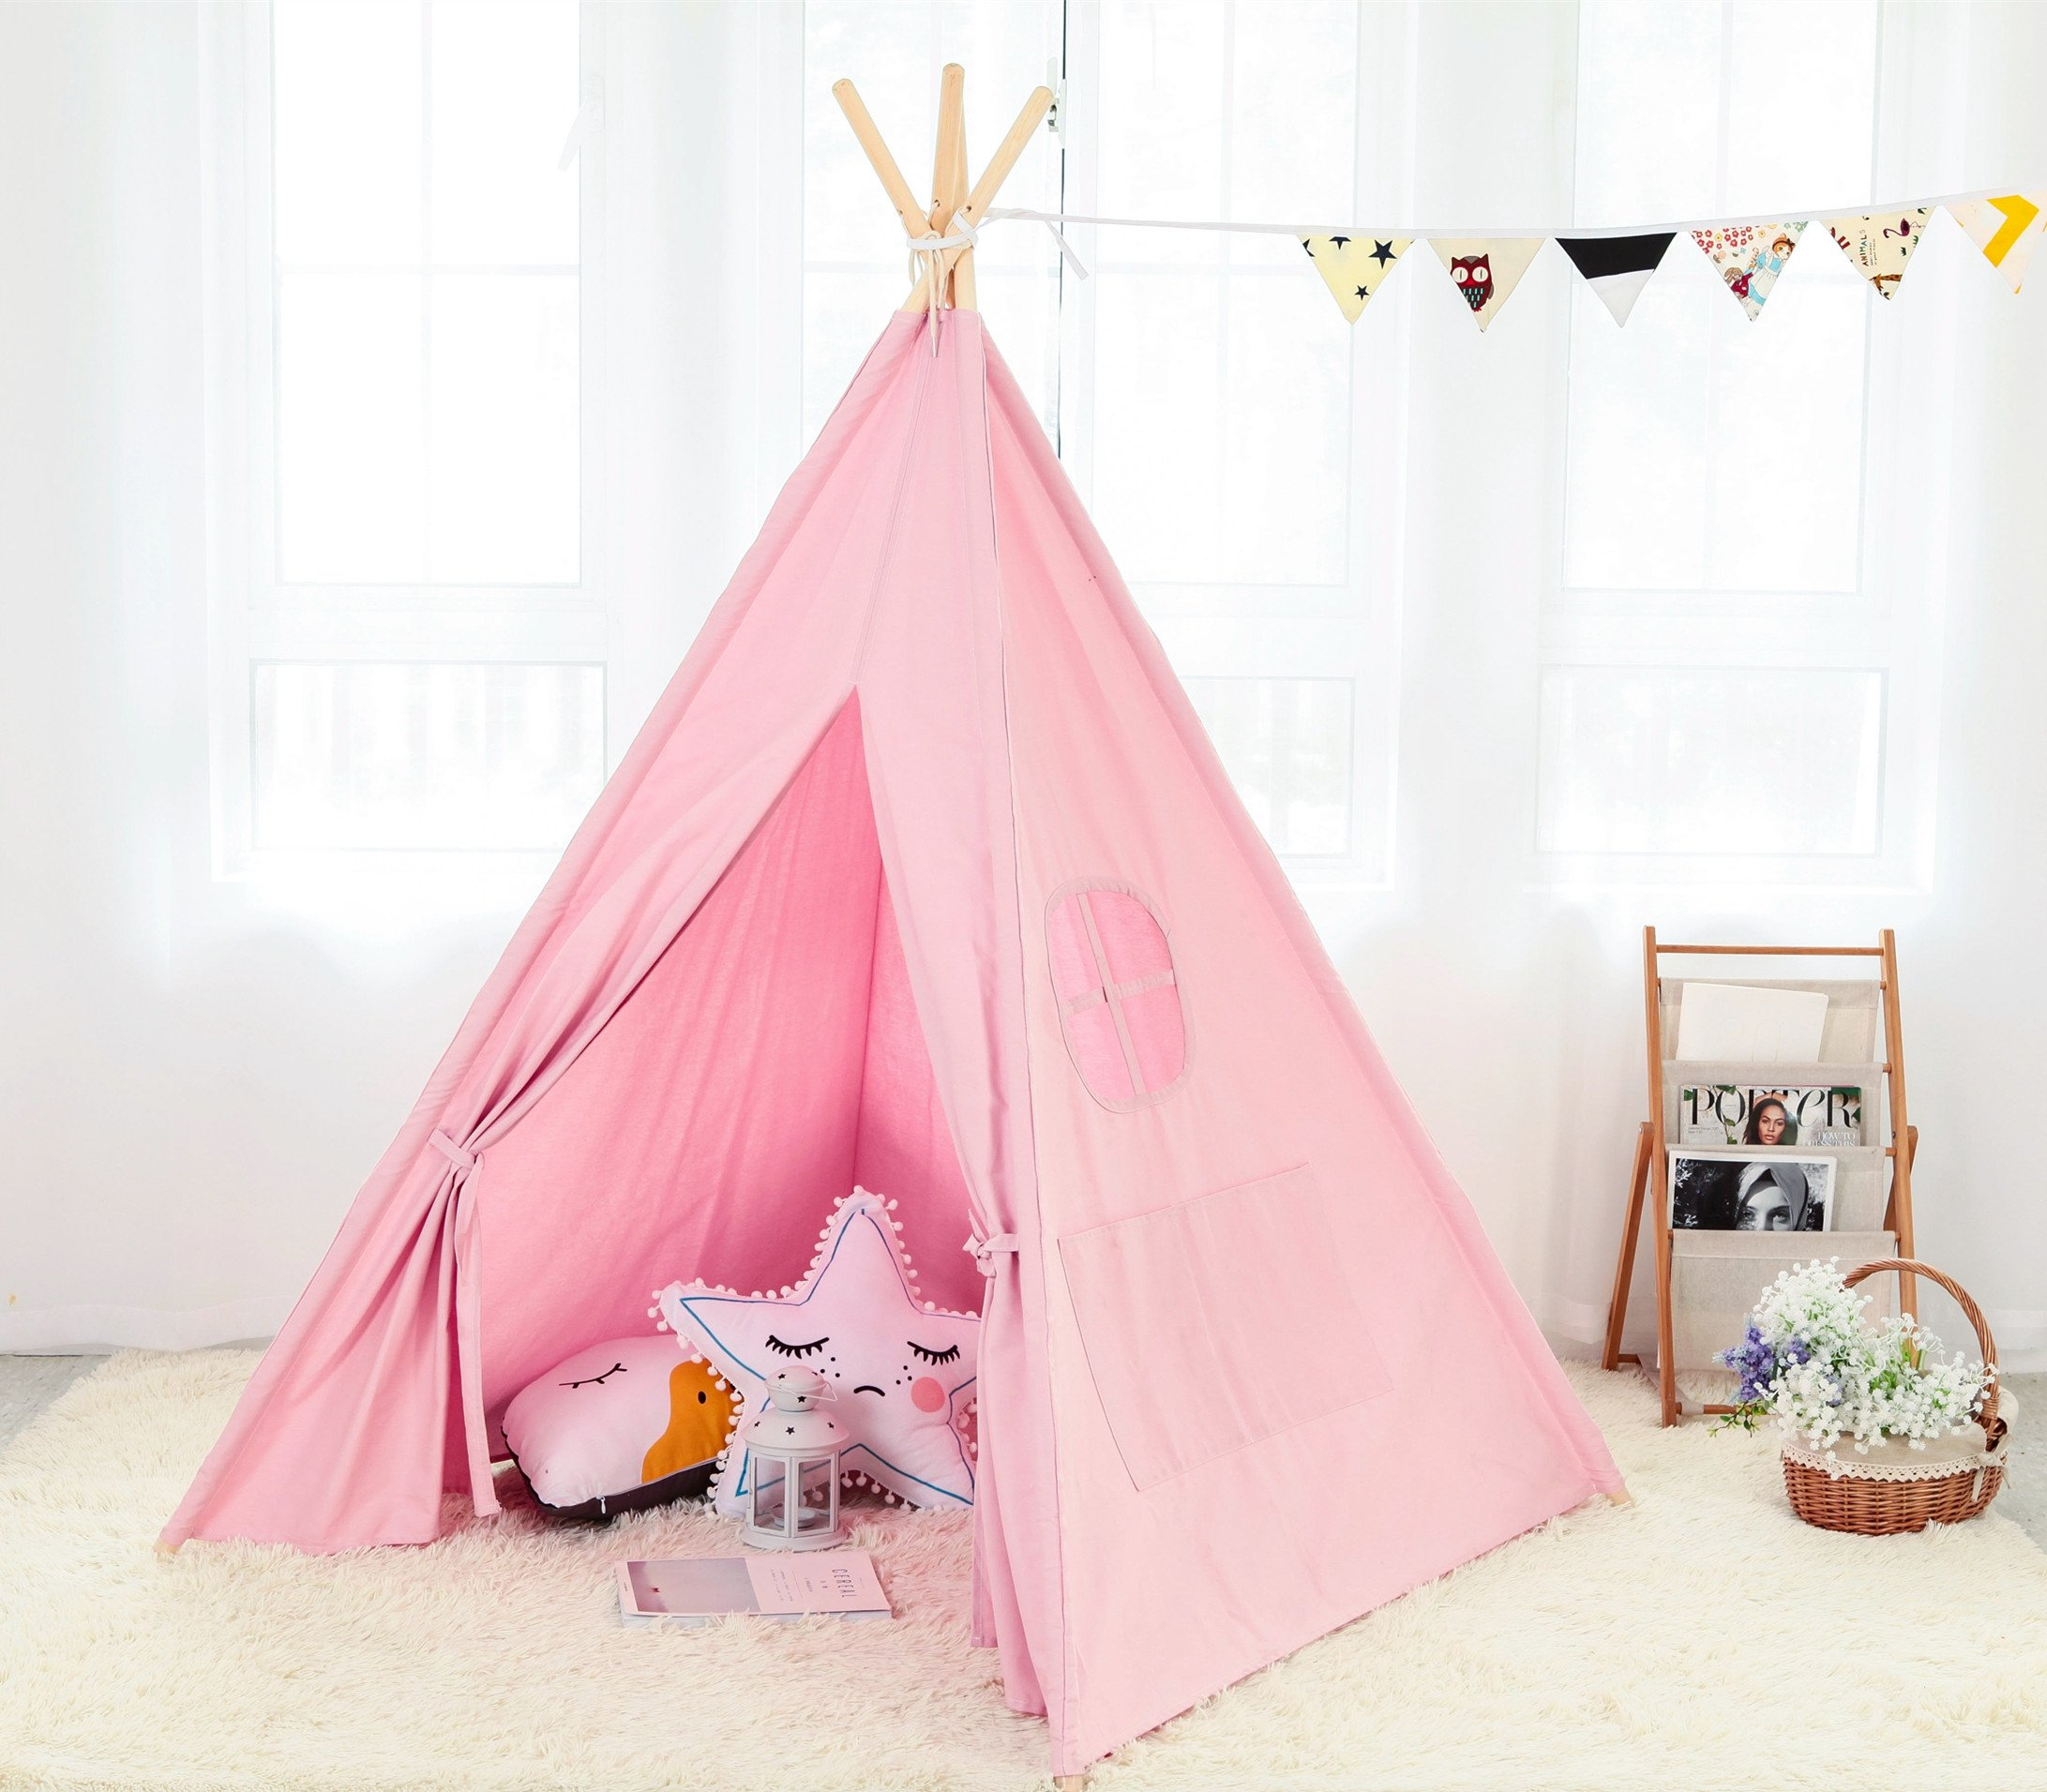 Steegic Outdoor and Indoor Great Canvas Indian Teepee Playhouse for Kids, Pink